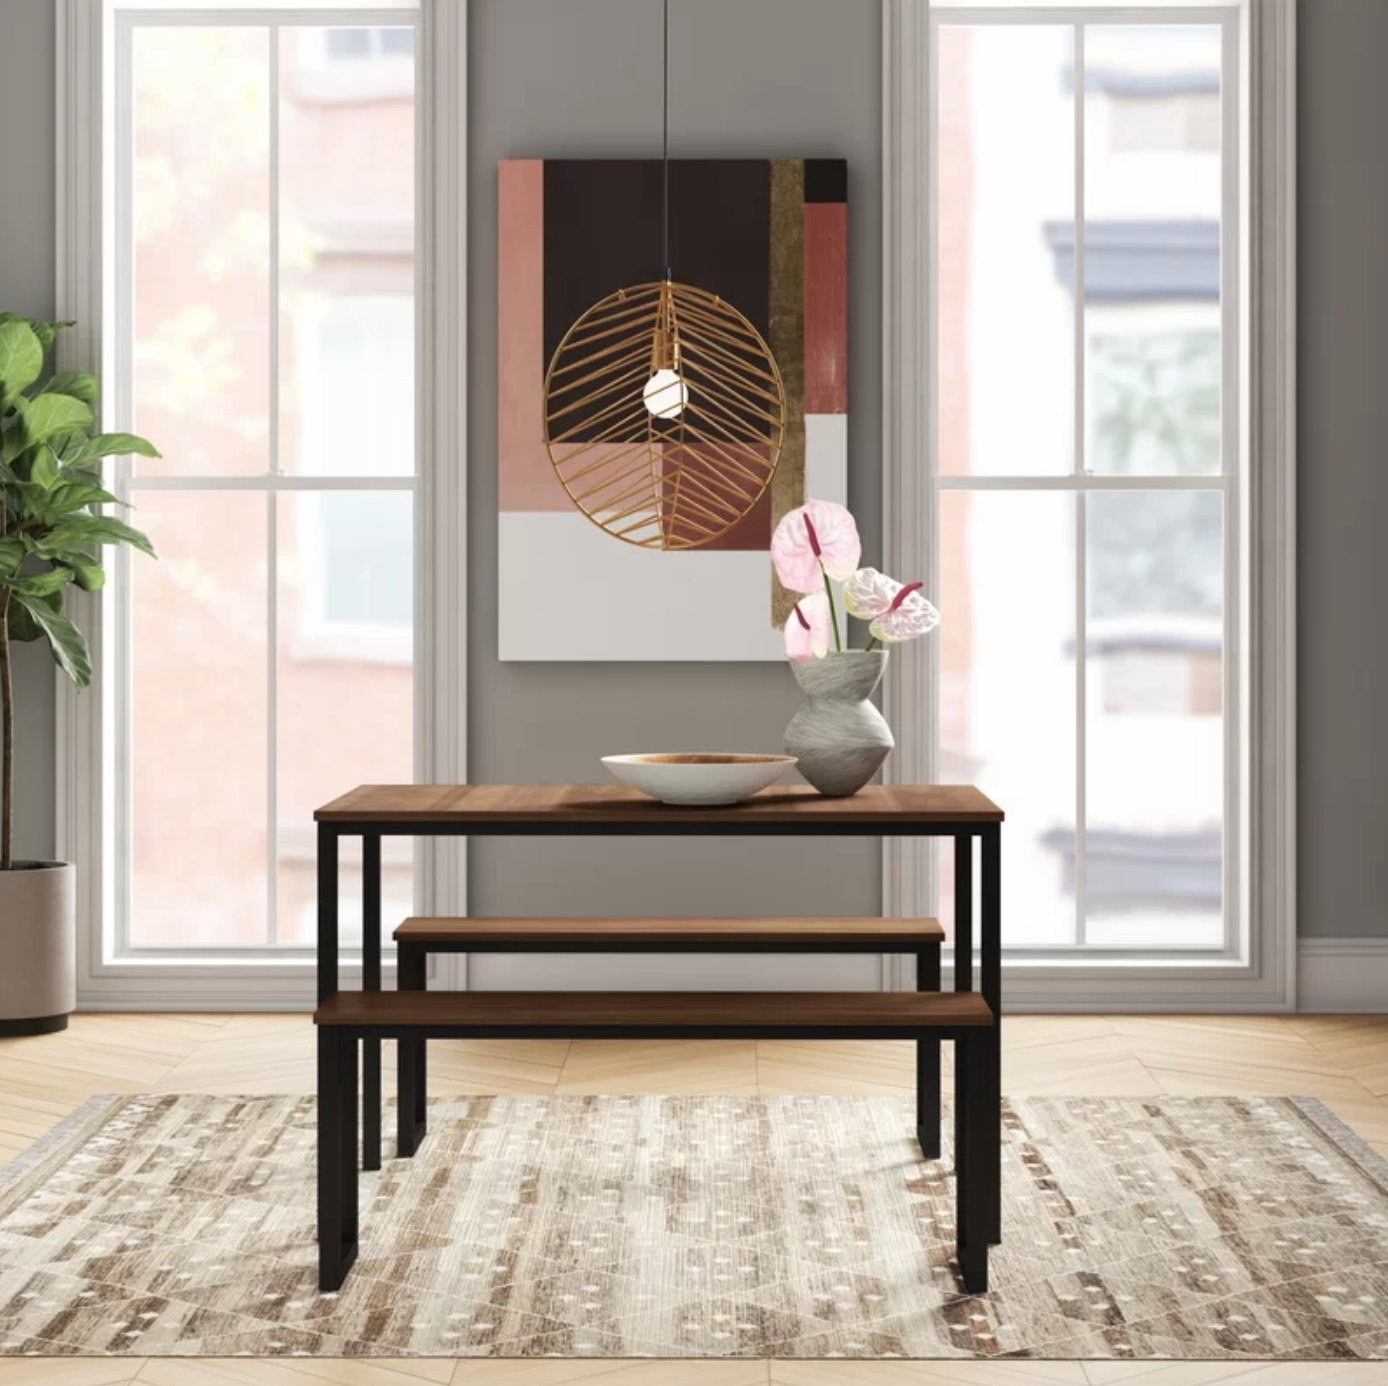 The dining table set in black/rich brown